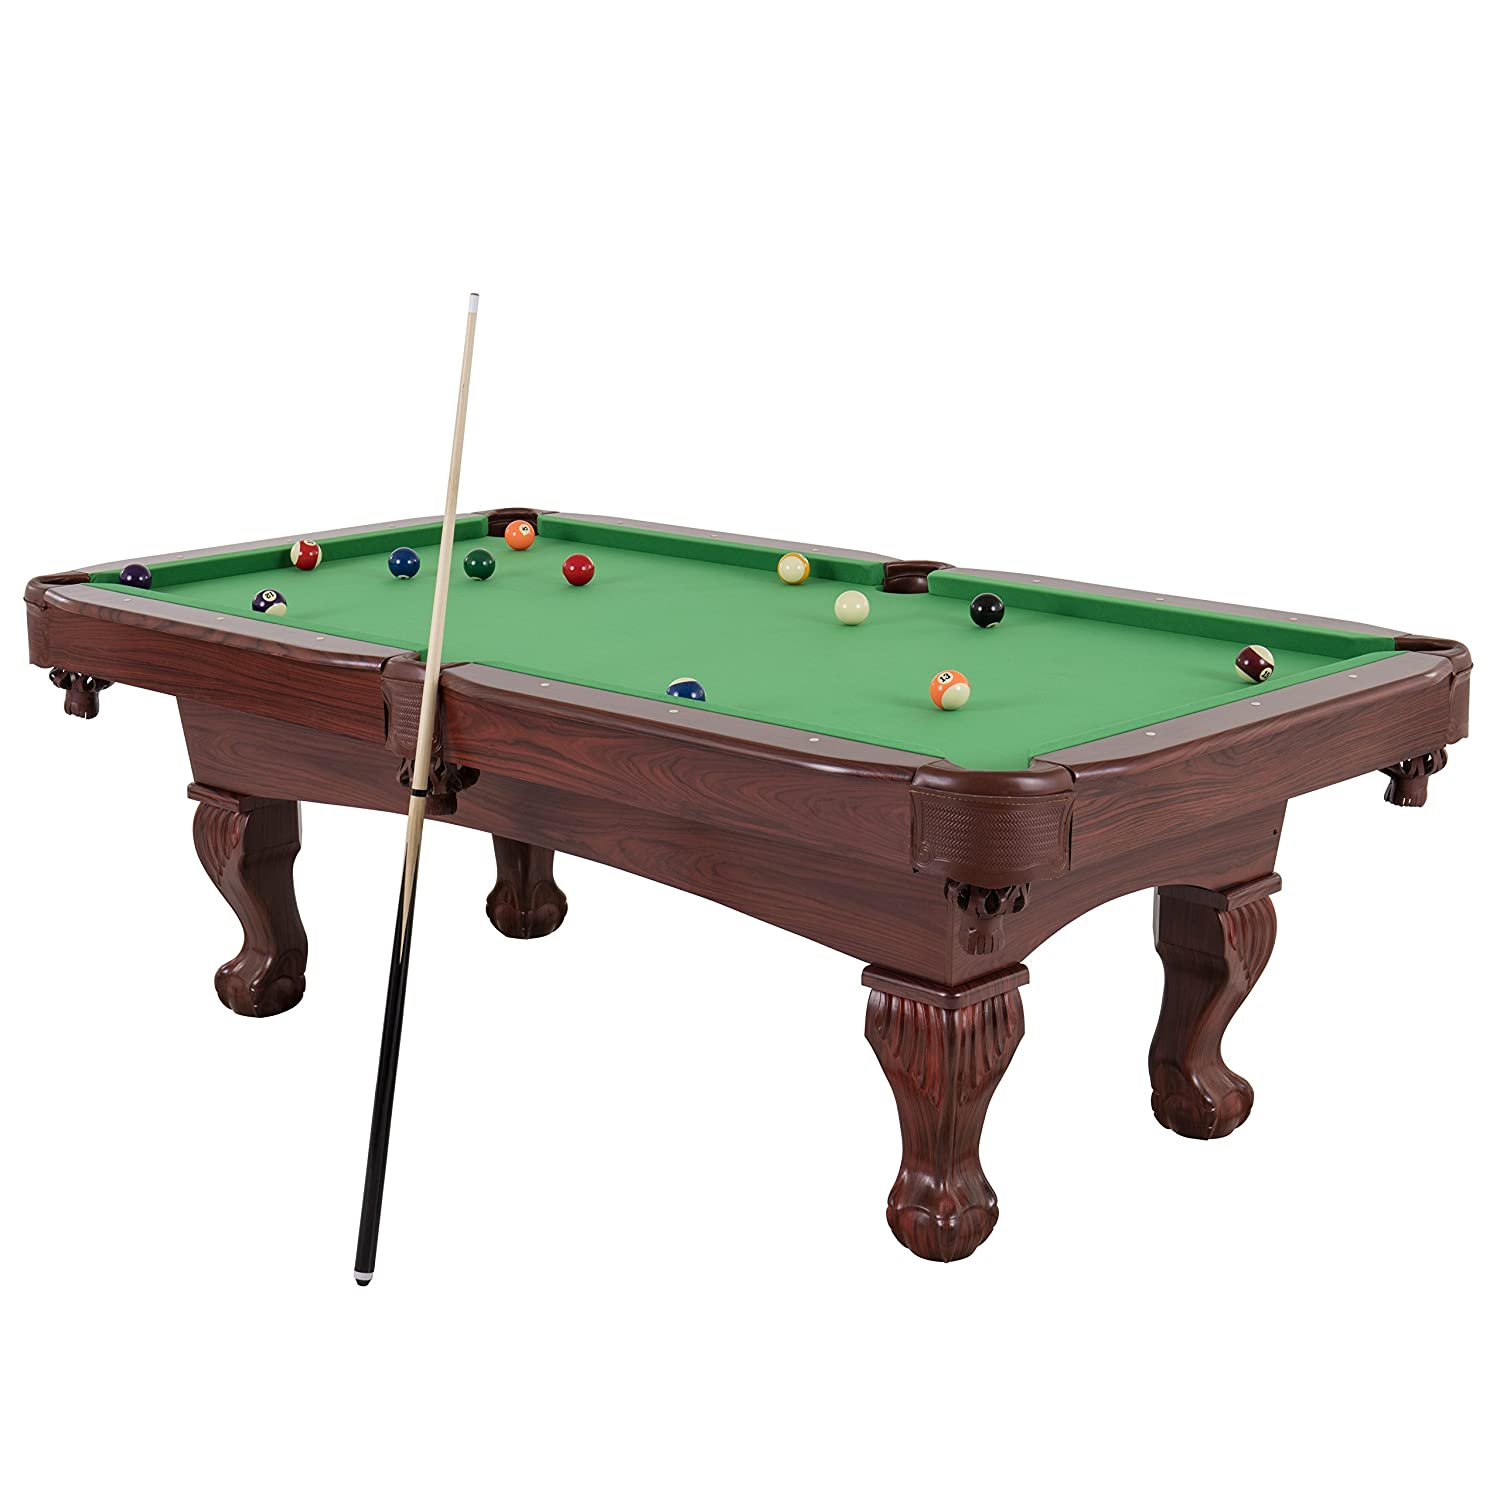 Pool Billiards Tables Amazoncom Pool Billiards - Tournament choice pool table